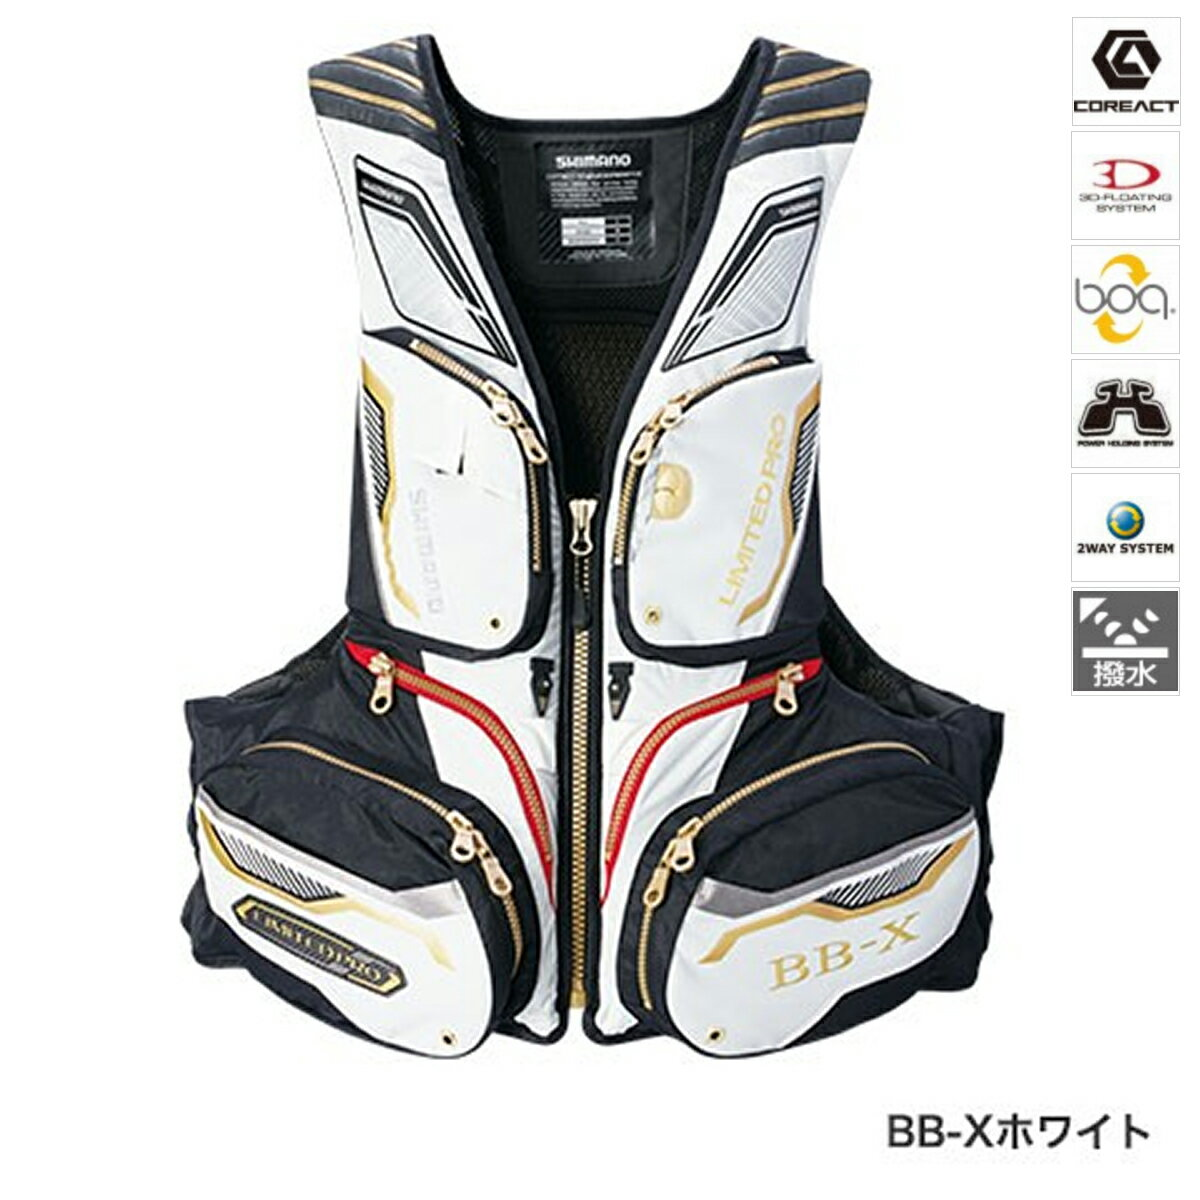 シマノ NEXUS FLOATING VEST LIMITED PRO VF-113Q XL BB-Xホワイト【送料無料】